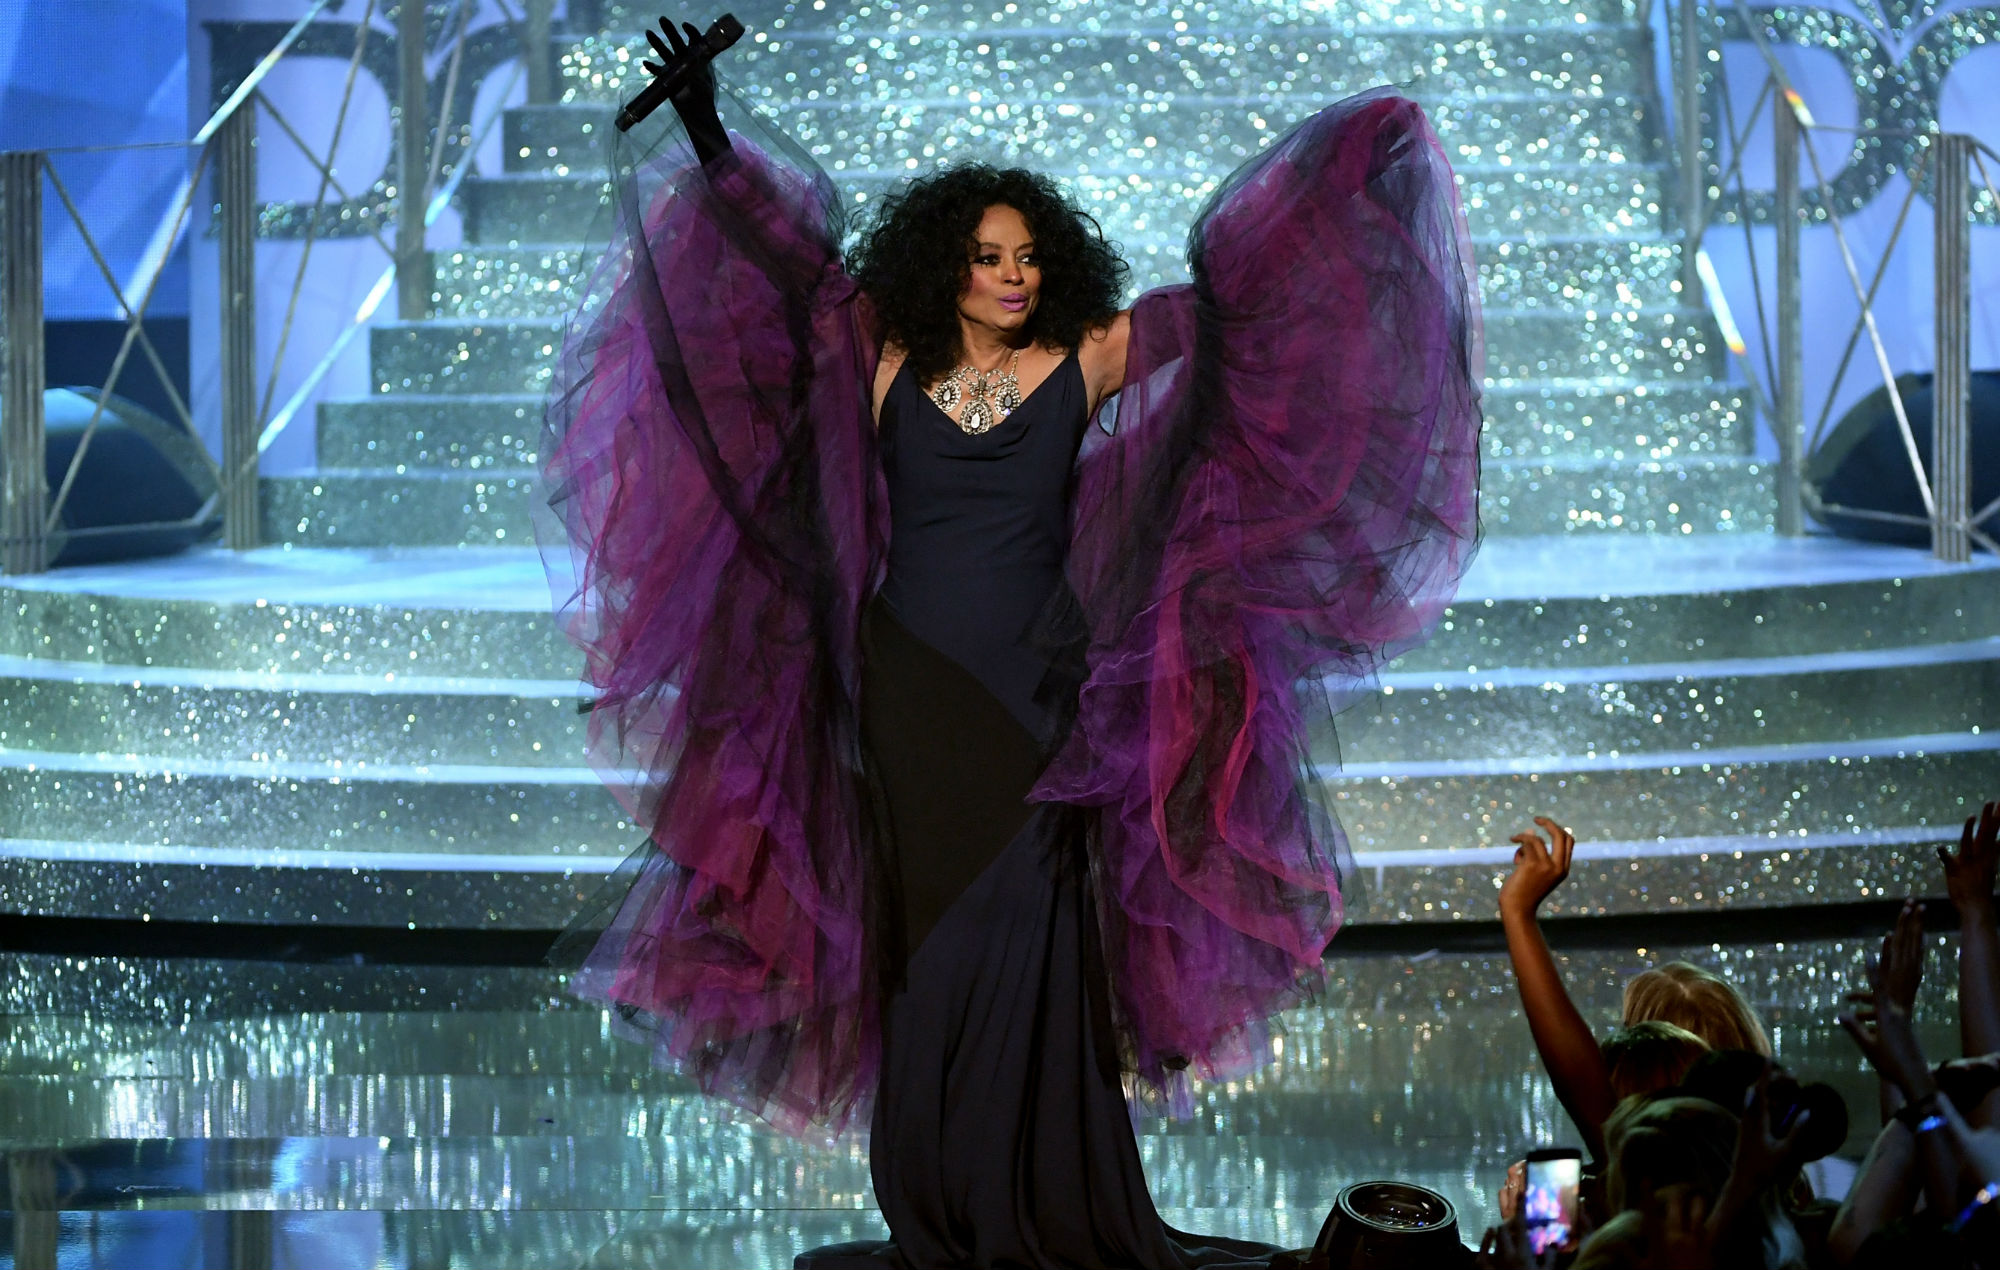 diana ross confirmed for legends slot at glastonbury 2020 legends slot at glastonbury 2020